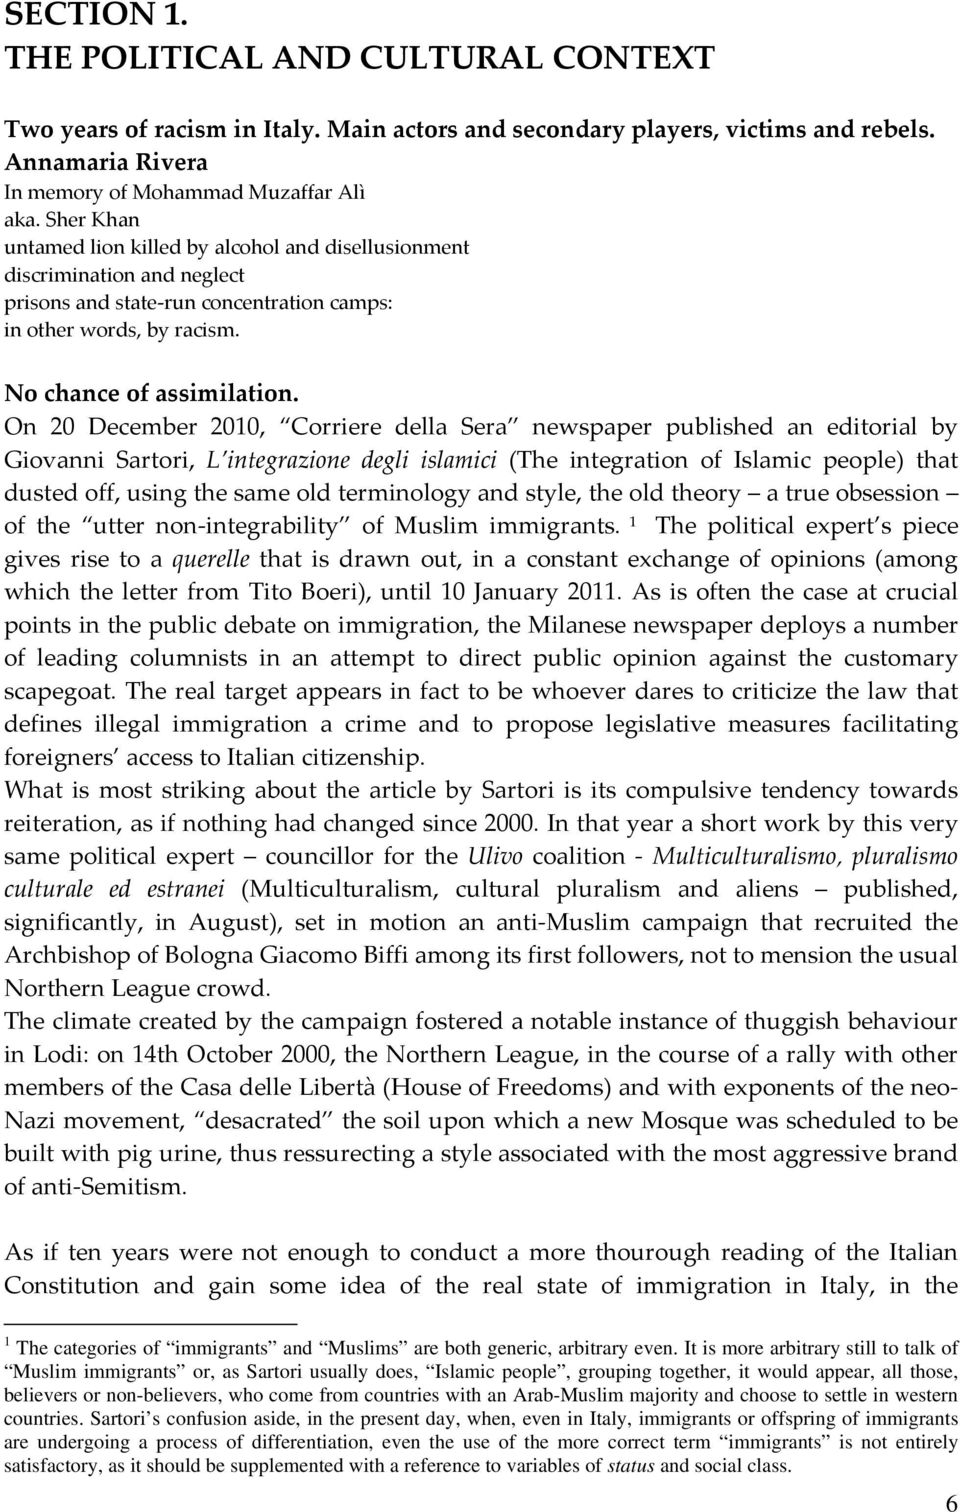 On 20 December 2010, Corriere della Sera newspaper published an editorial by Giovanni Sartori, L integrazione degli islamici (The integration of Islamic people) that dusted off, using the same old